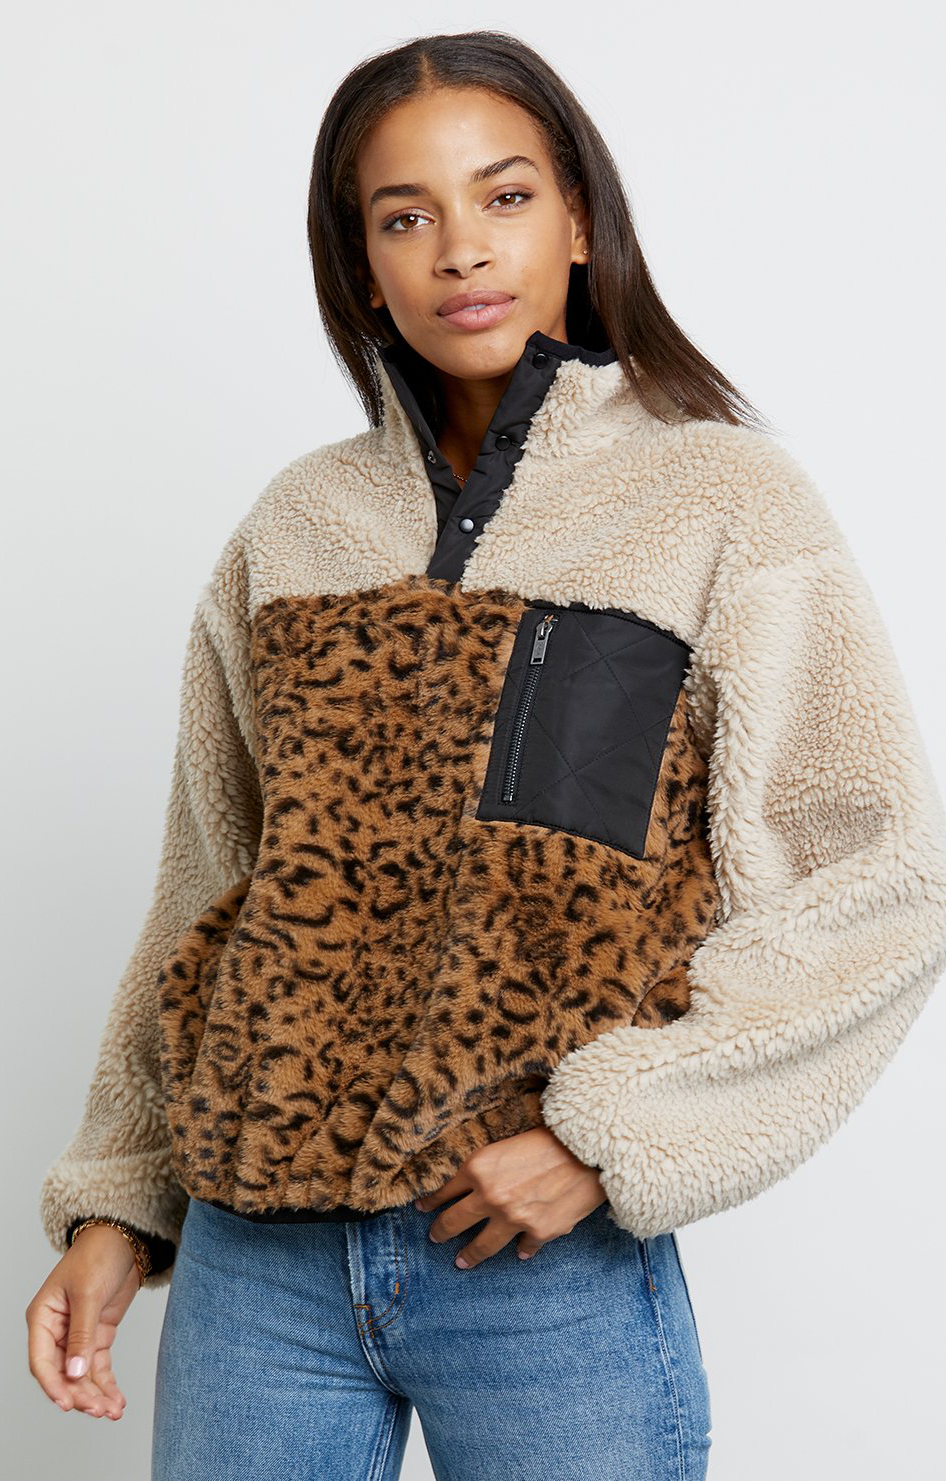 Saga Sweater - Cream Leopard Mix